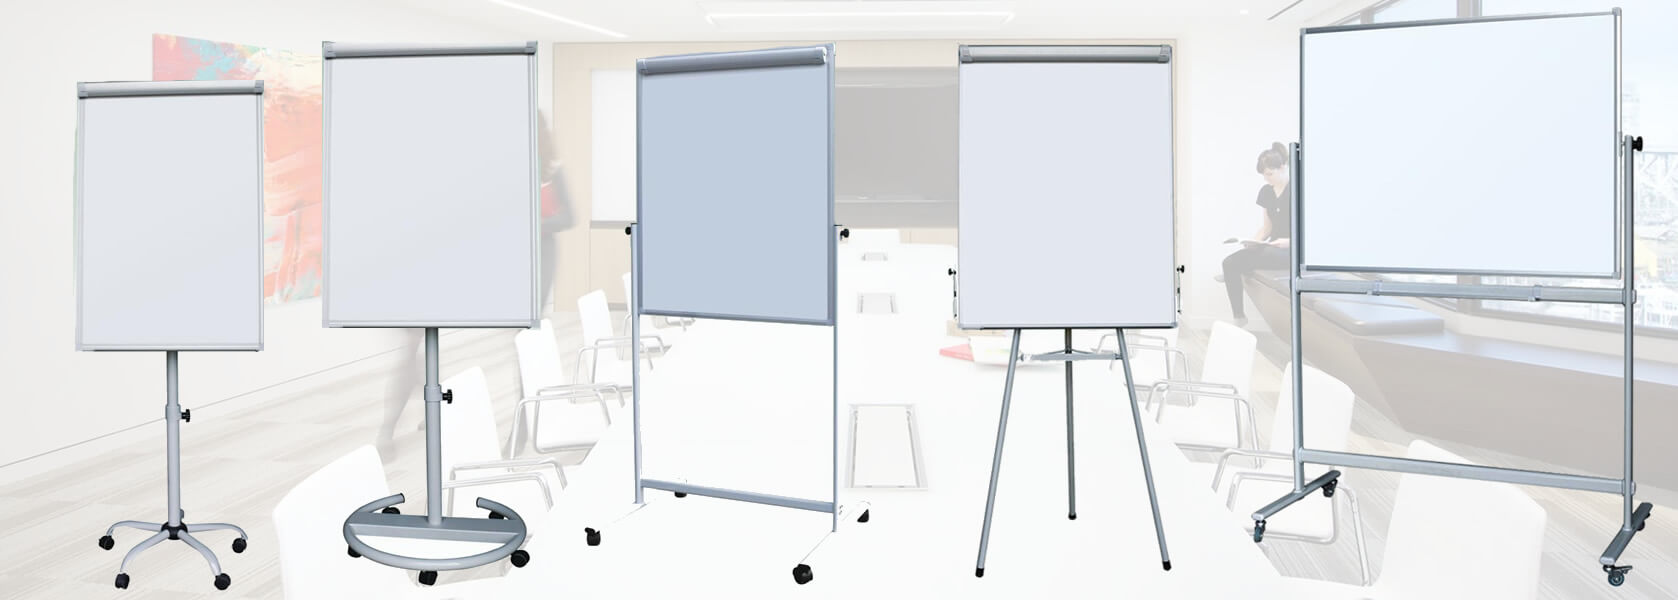 Deeboards Stationery 6 whiteboard manufacturer